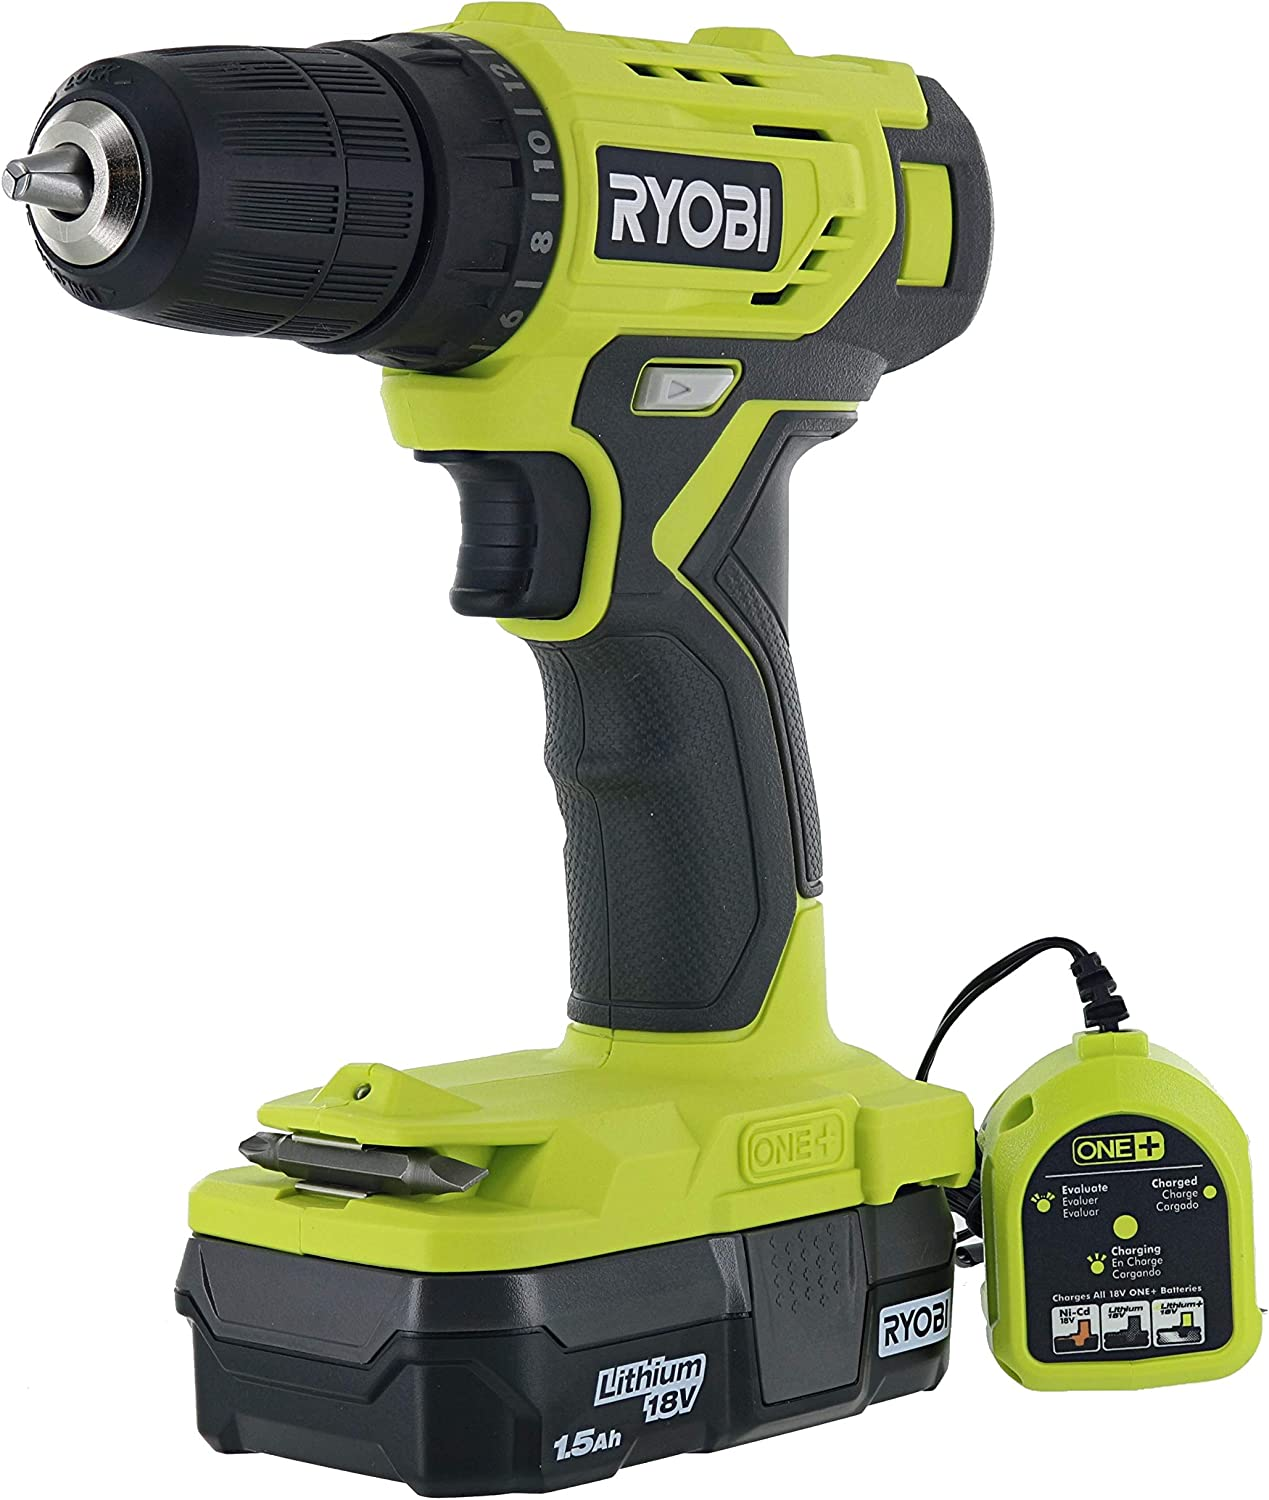 NEW Ryobi 18-Volt ONE+ Cordless 3/8 in. Drill/Driver Kit (PDD209K) with 1.5 ah lithium battery and charger